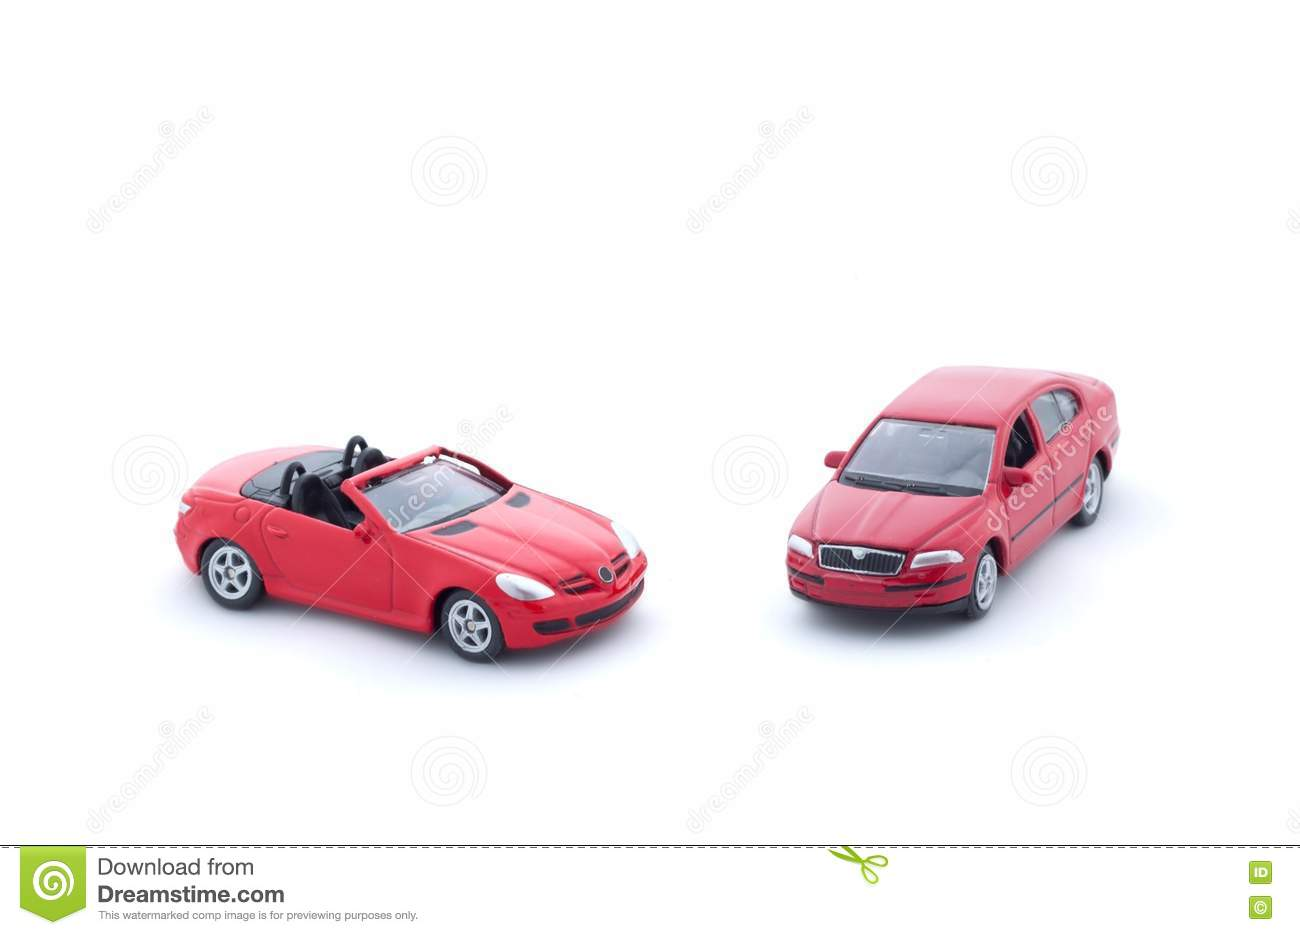 Two Red Toy Cars On White Background, Stock Photo - Image ...